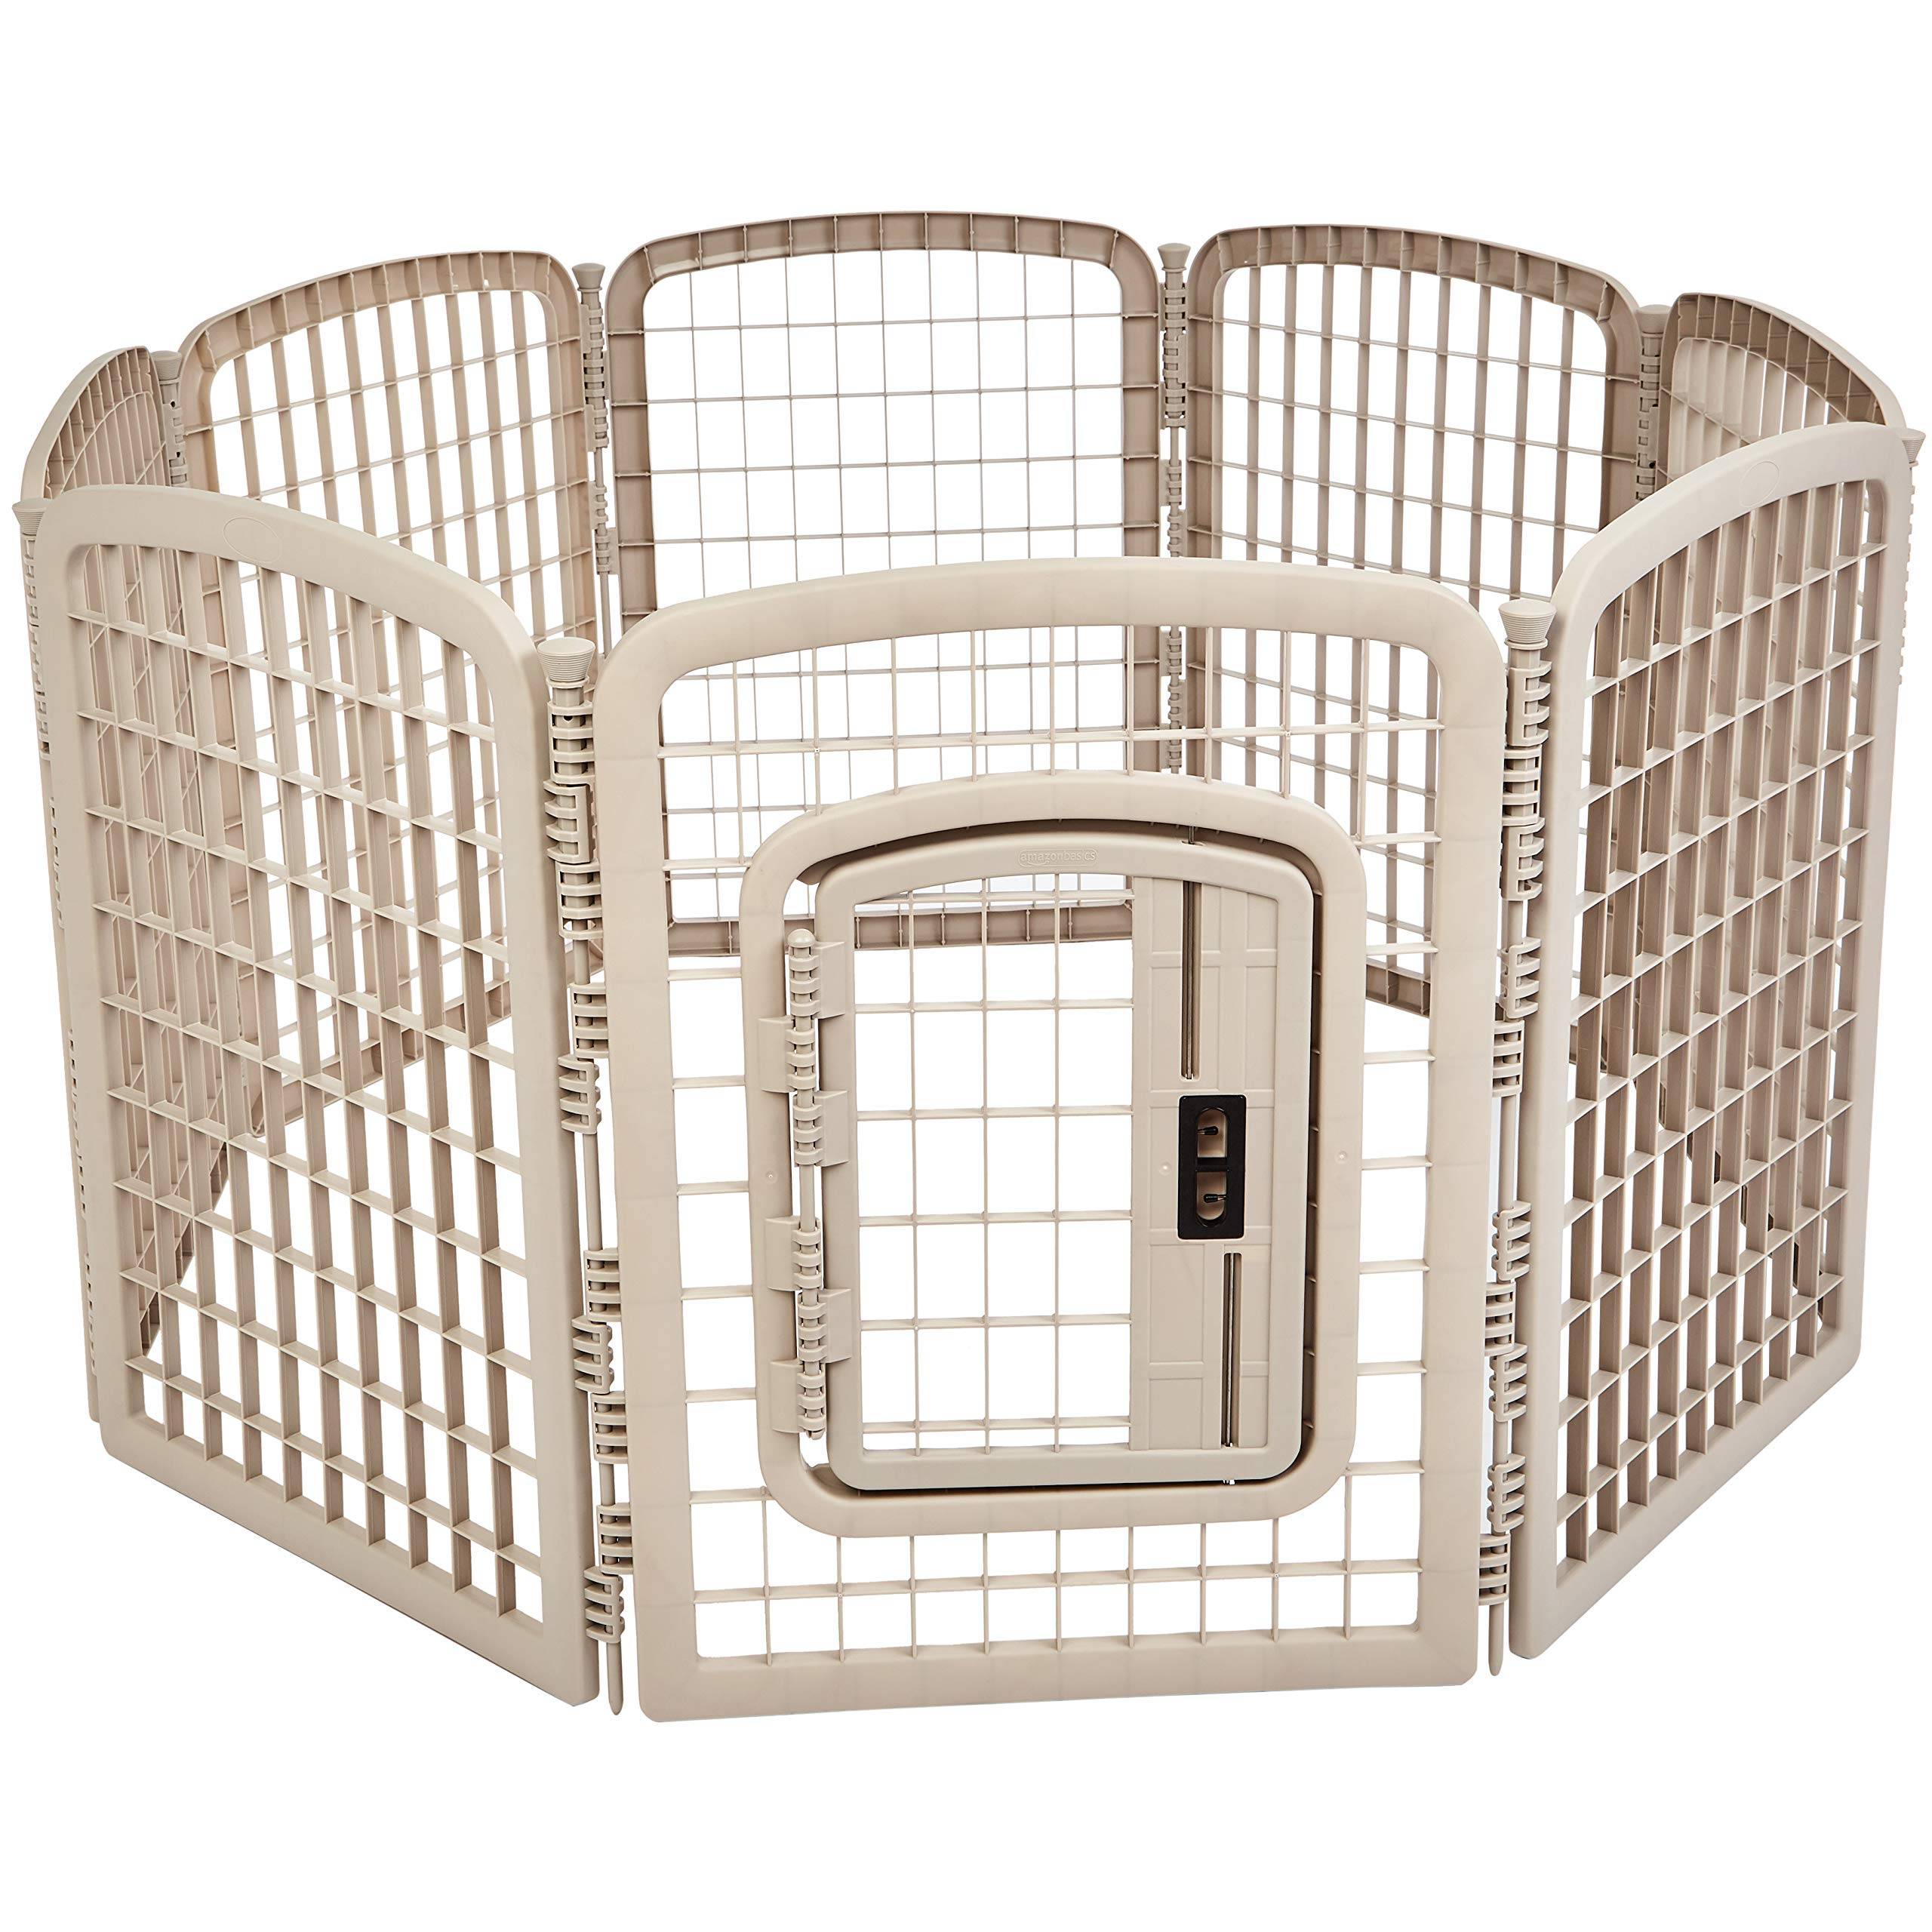 AmazonBasics 8-Panel Plastic Pet Pen Fence Enclosure With Gate - 64 x 64 x 34 Inches, Beige by AmazonBasics